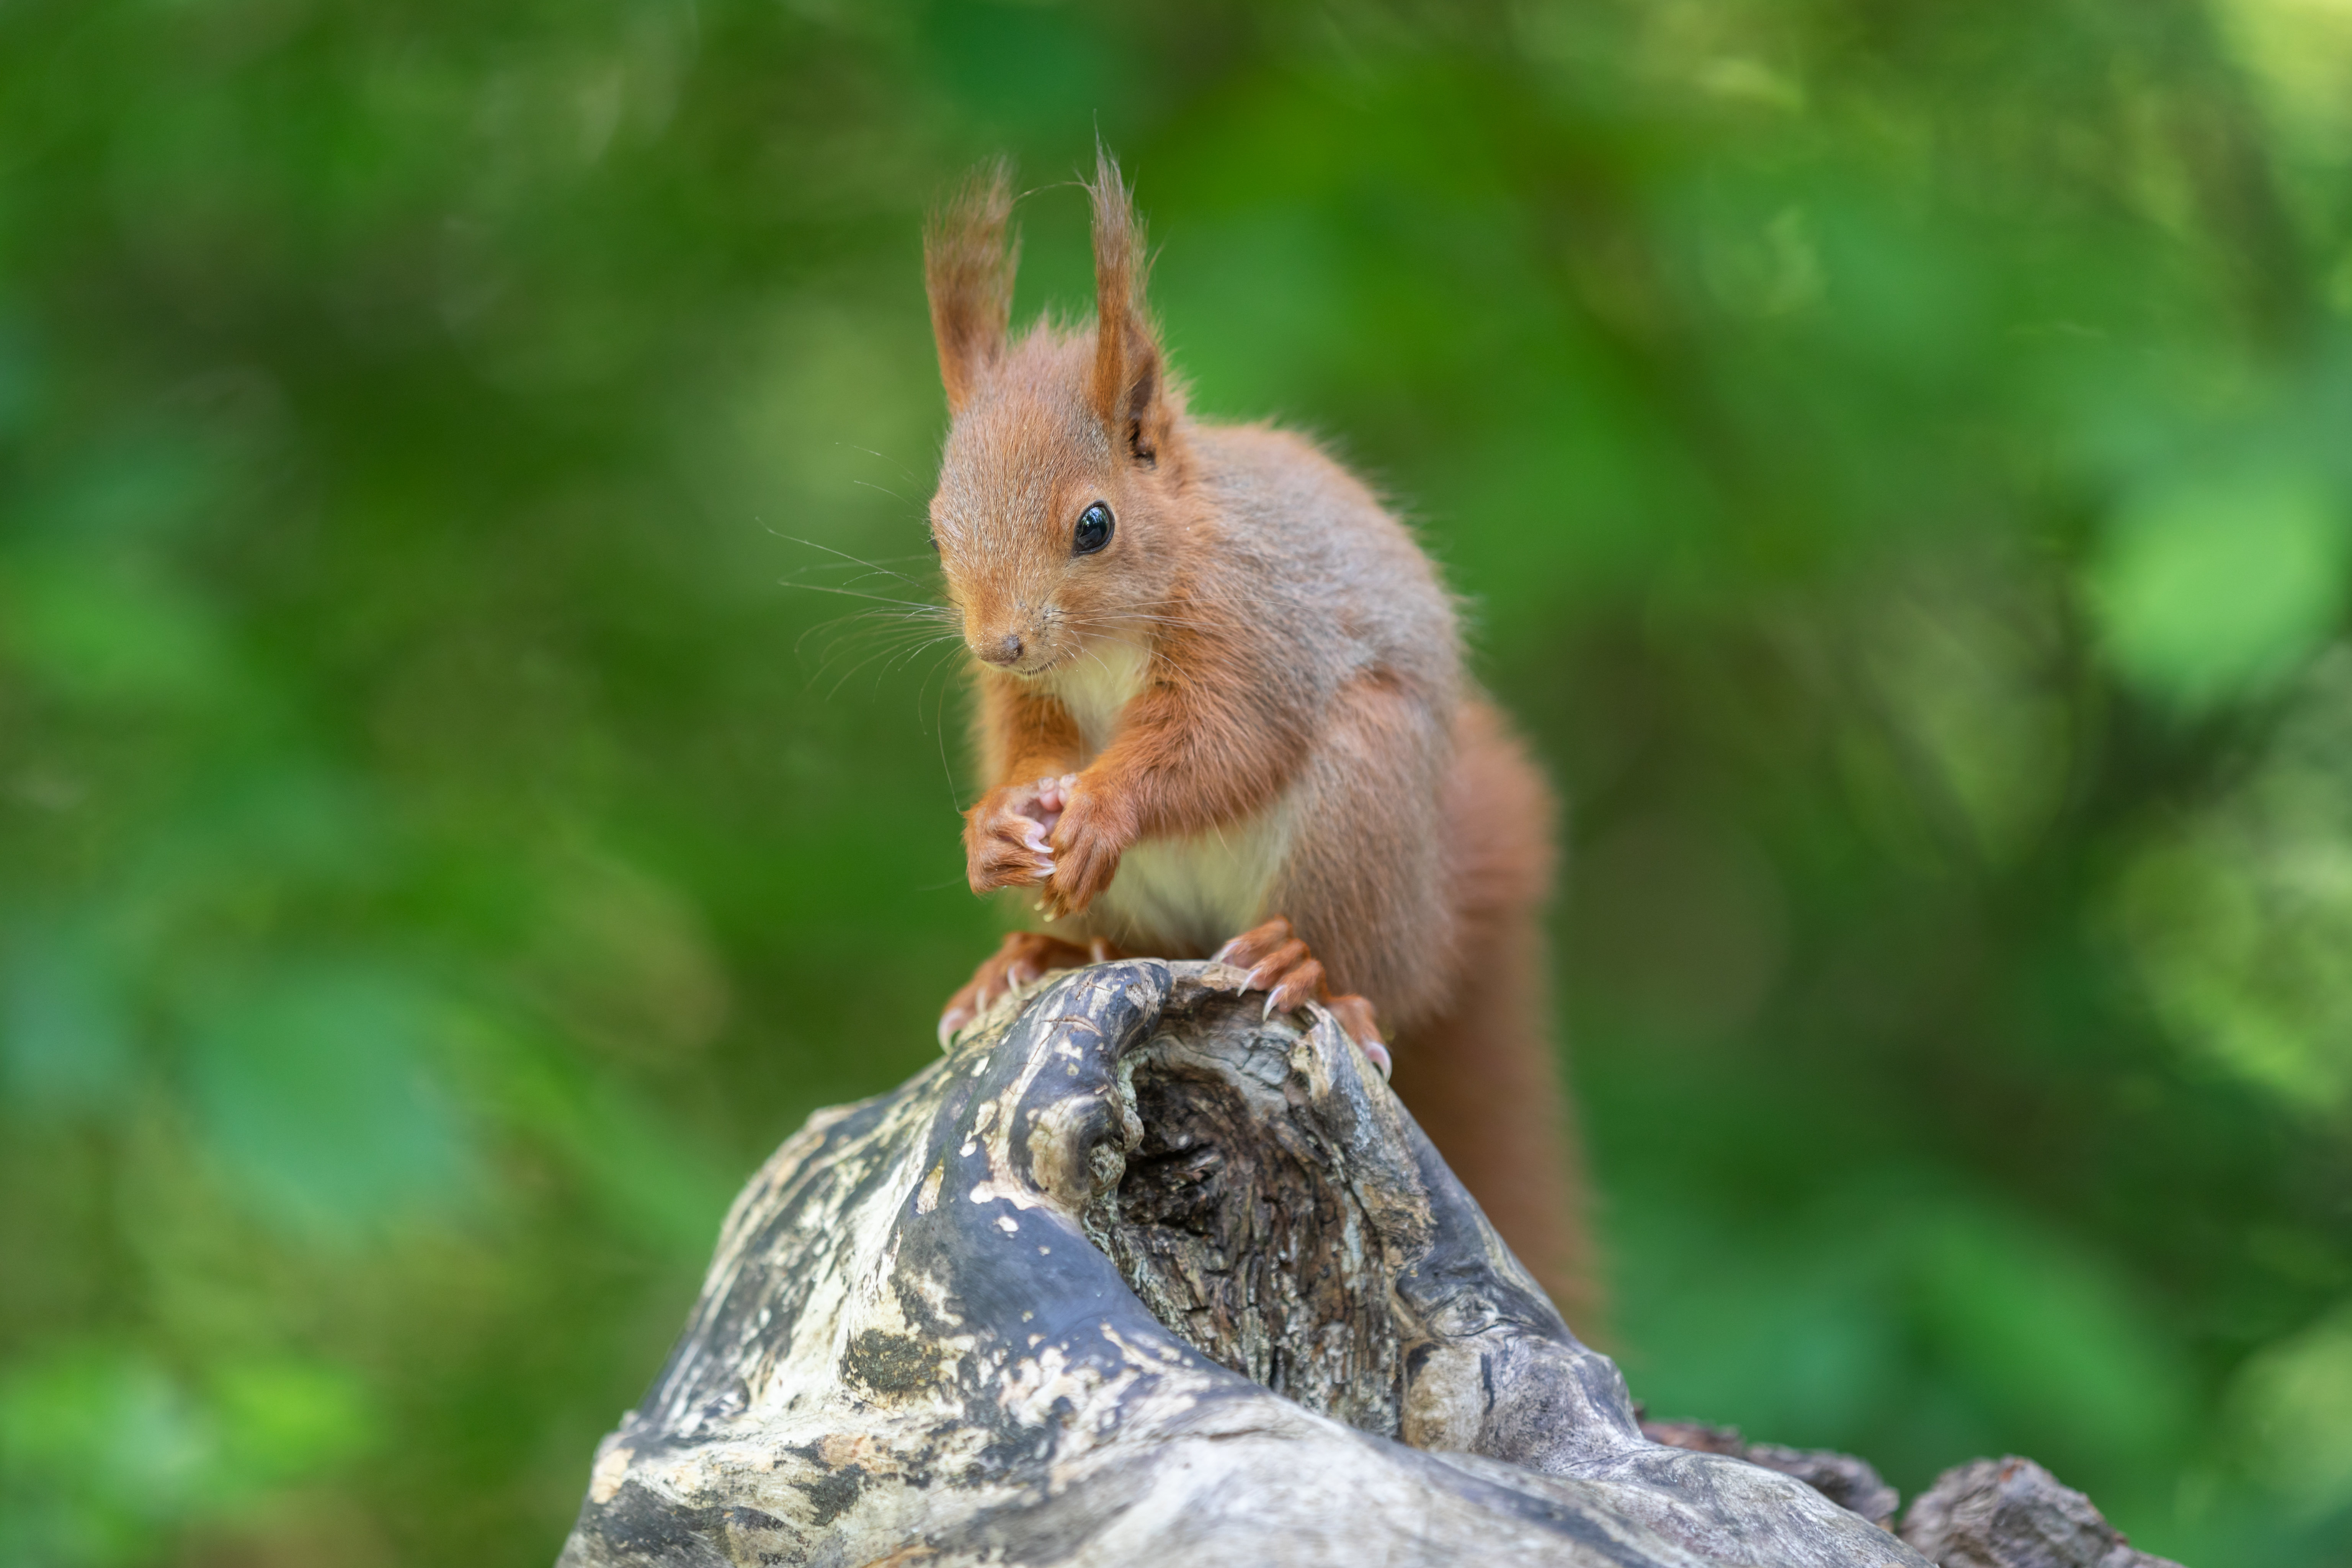 128509 download wallpaper Animals, Squirrel, Rodent, Beast, Nice, Sweetheart, Fluffy screensavers and pictures for free